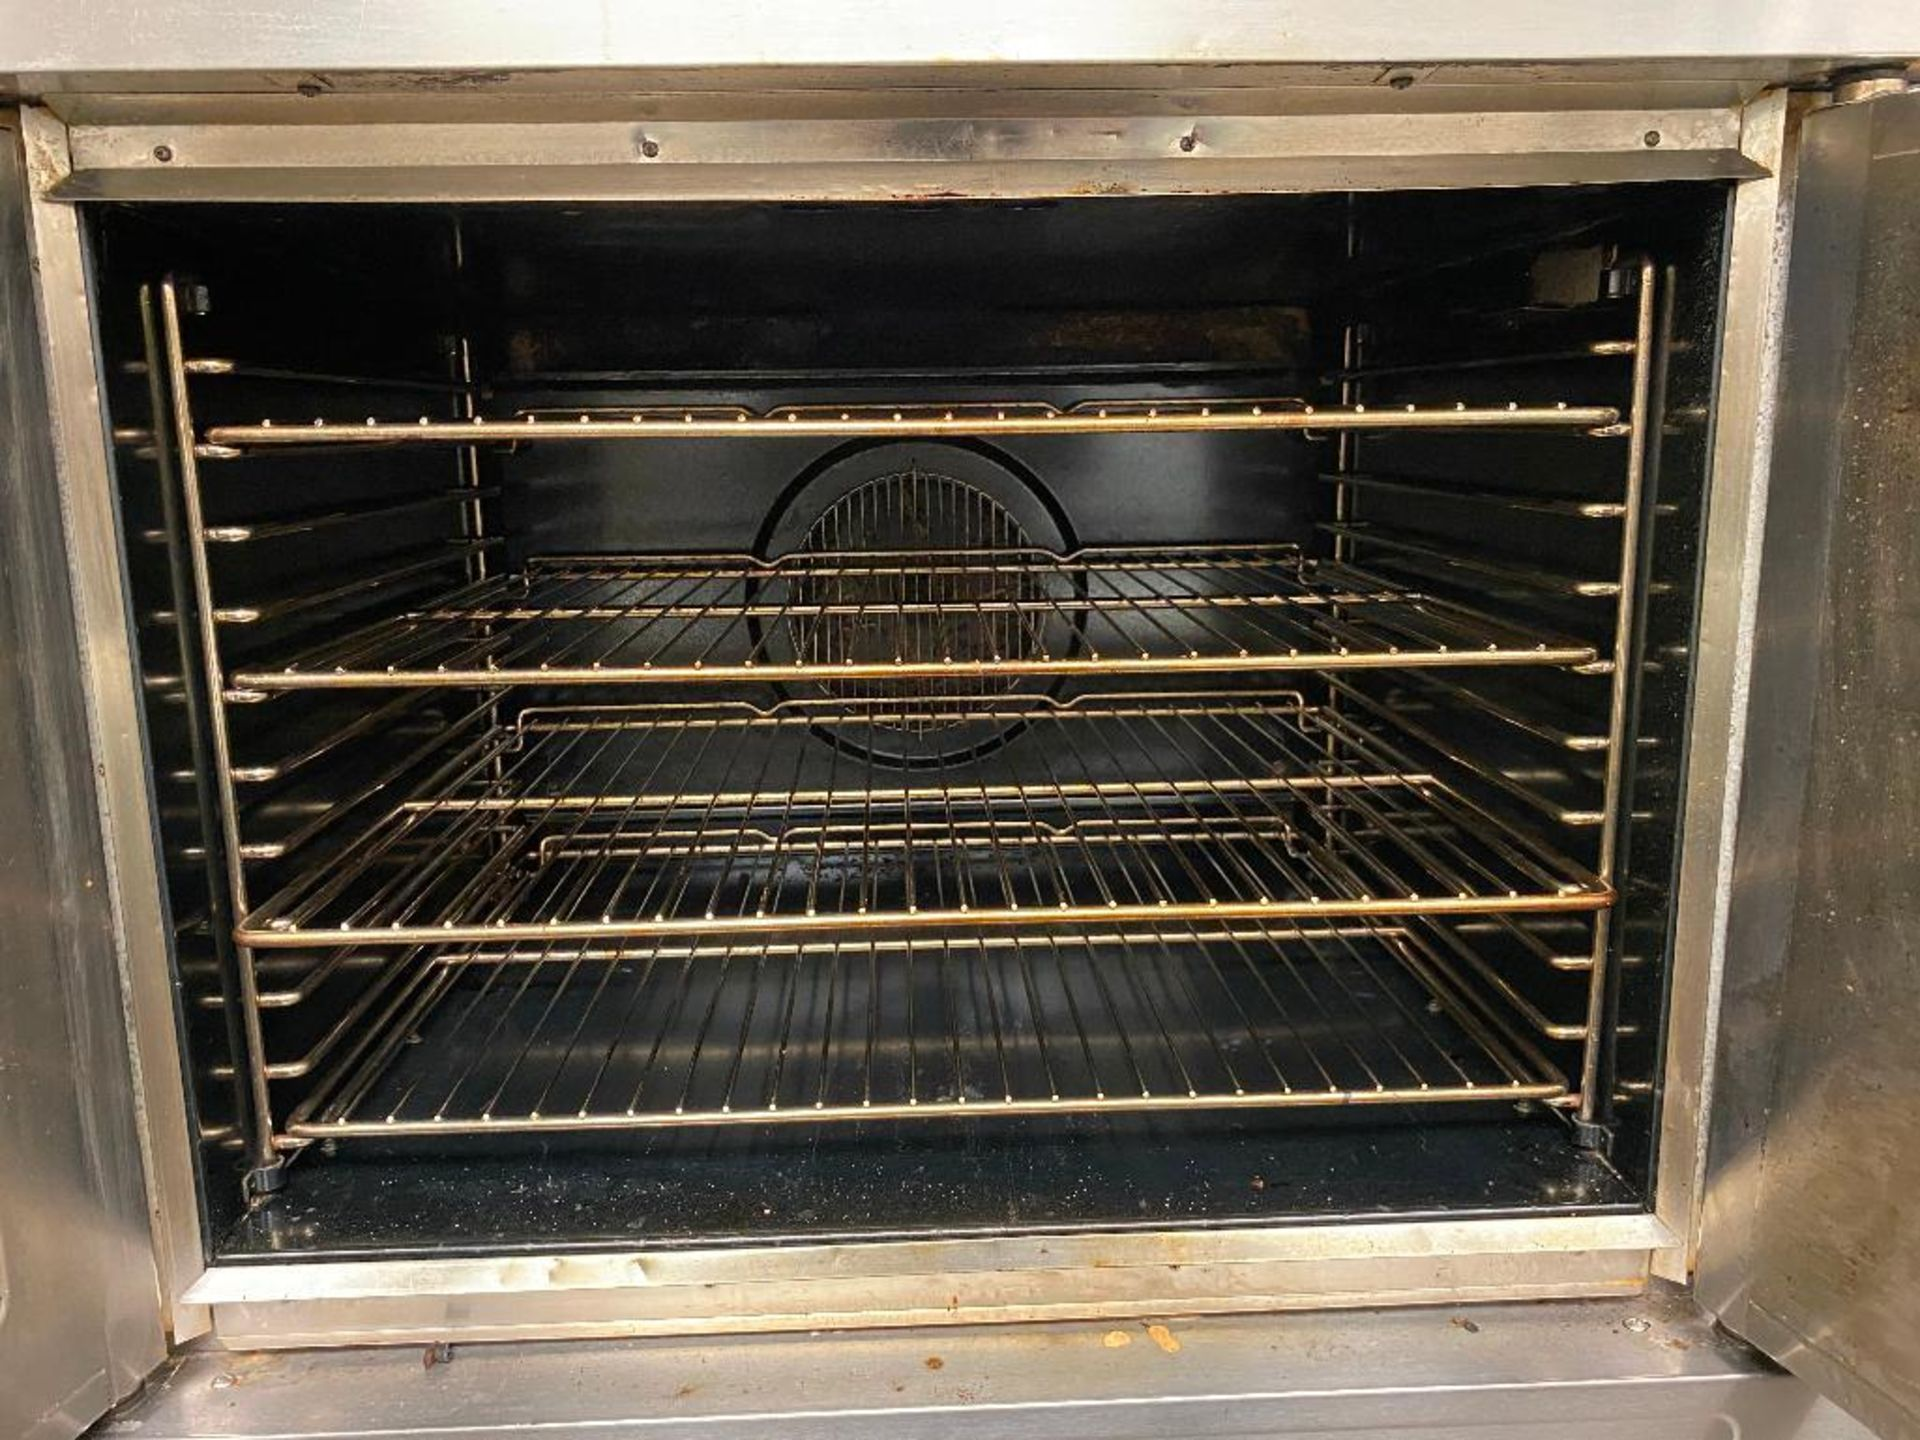 BLODGETT SHO-100-G GAS CONVECTION OVEN - NOTE: REQUIRES DISCONNECT, PLEASE INSPECT - Image 4 of 5